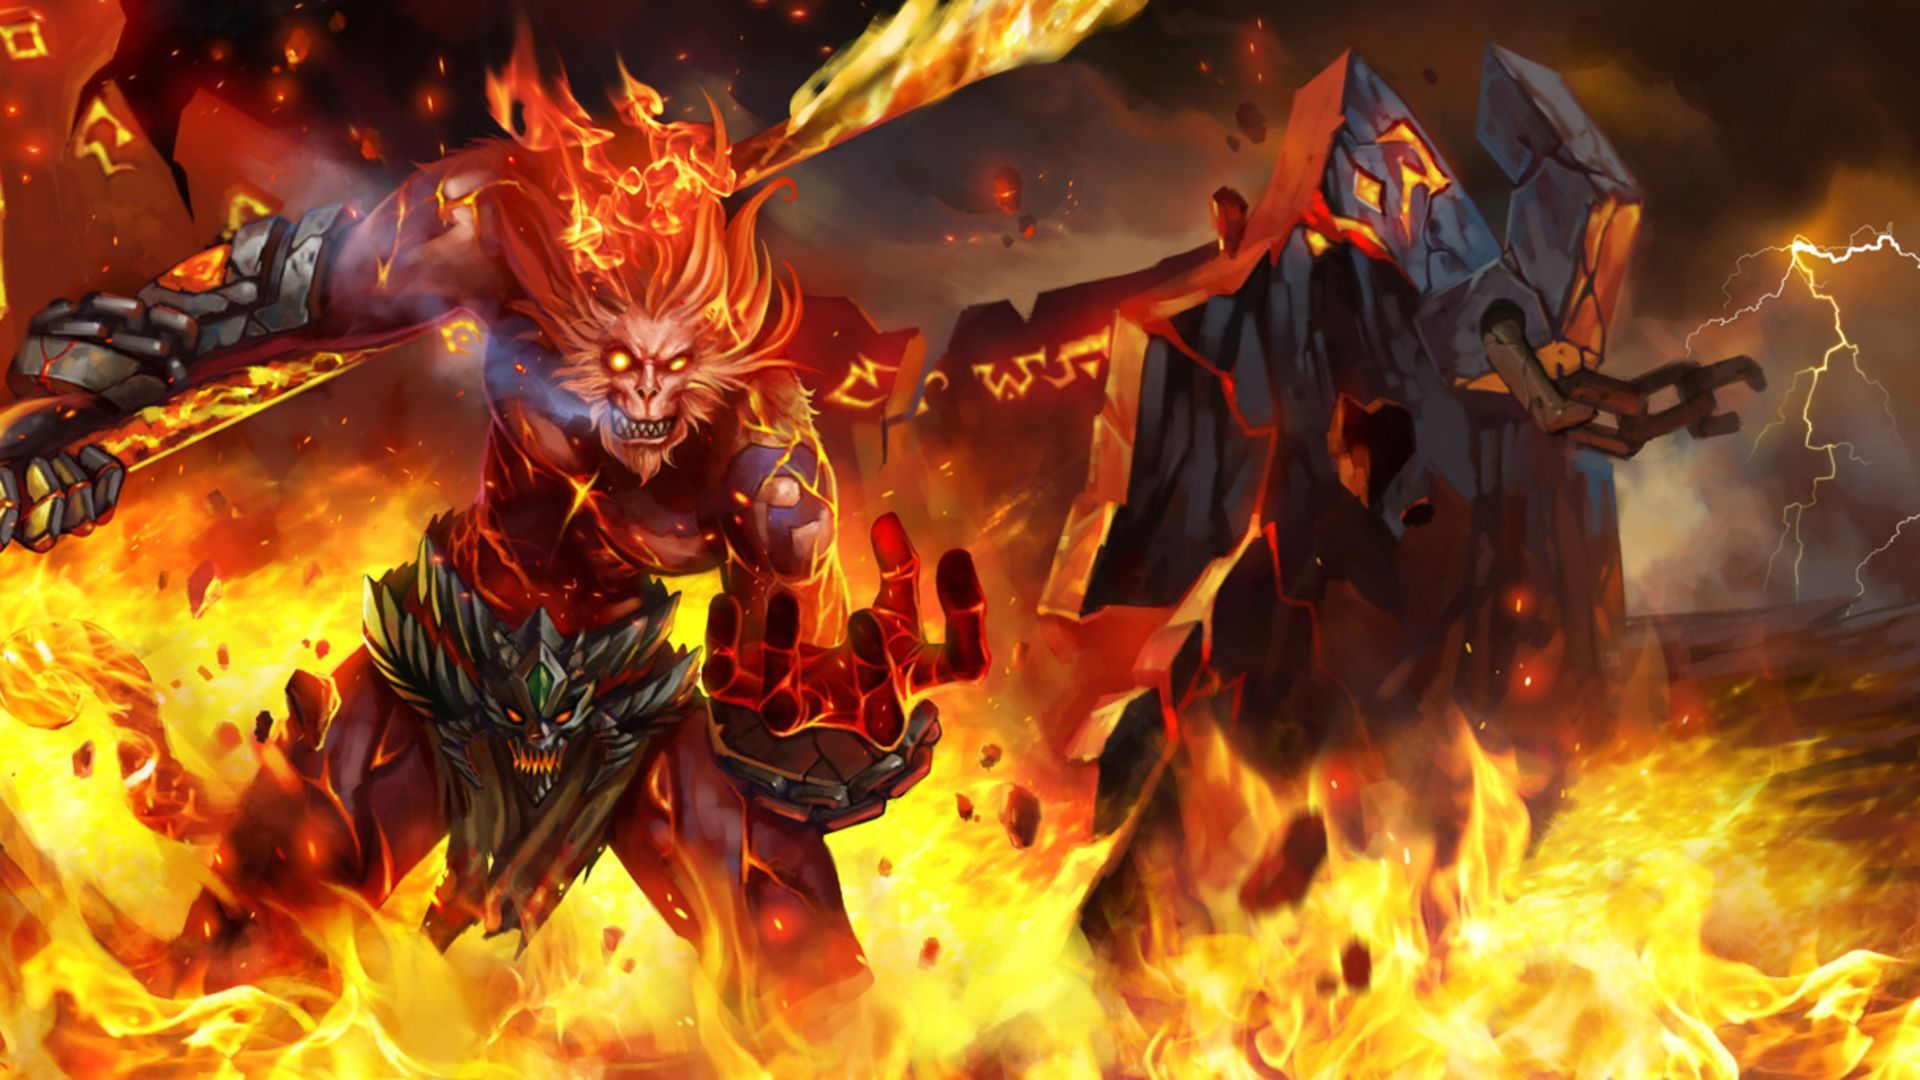 Wukong   League of Legends Wallpaper   MixHD wallpapers 1920x1080